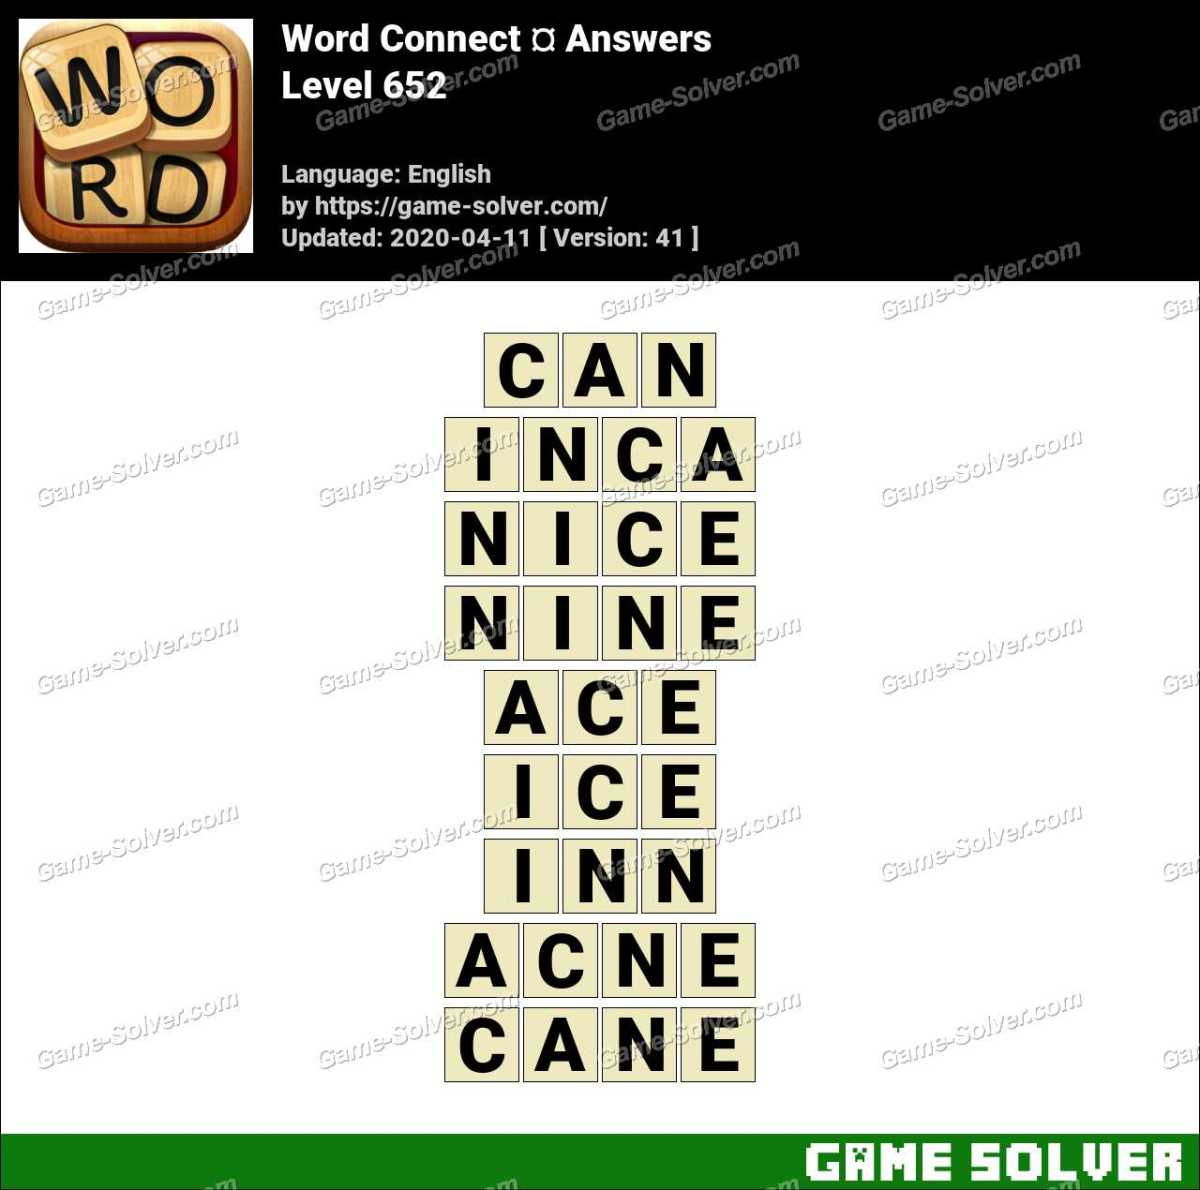 Word Connect Level 652 Answers